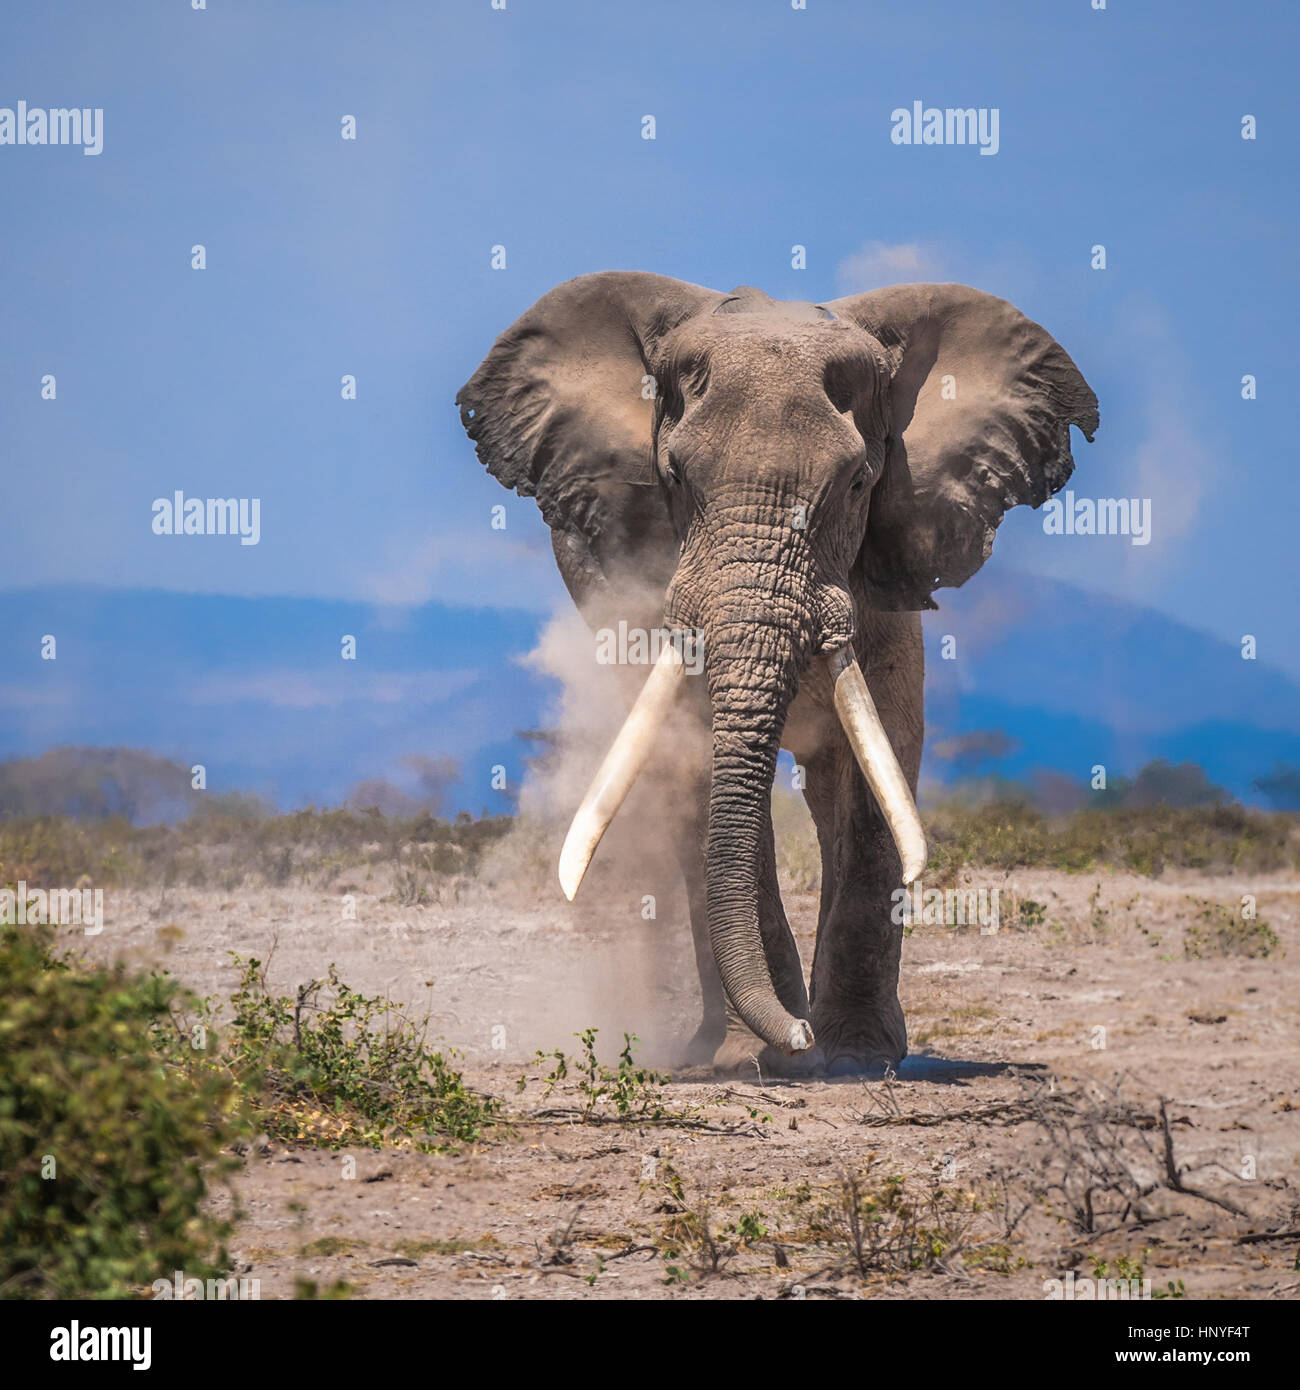 old elephant, amboseli national park, kenya - Stock Image